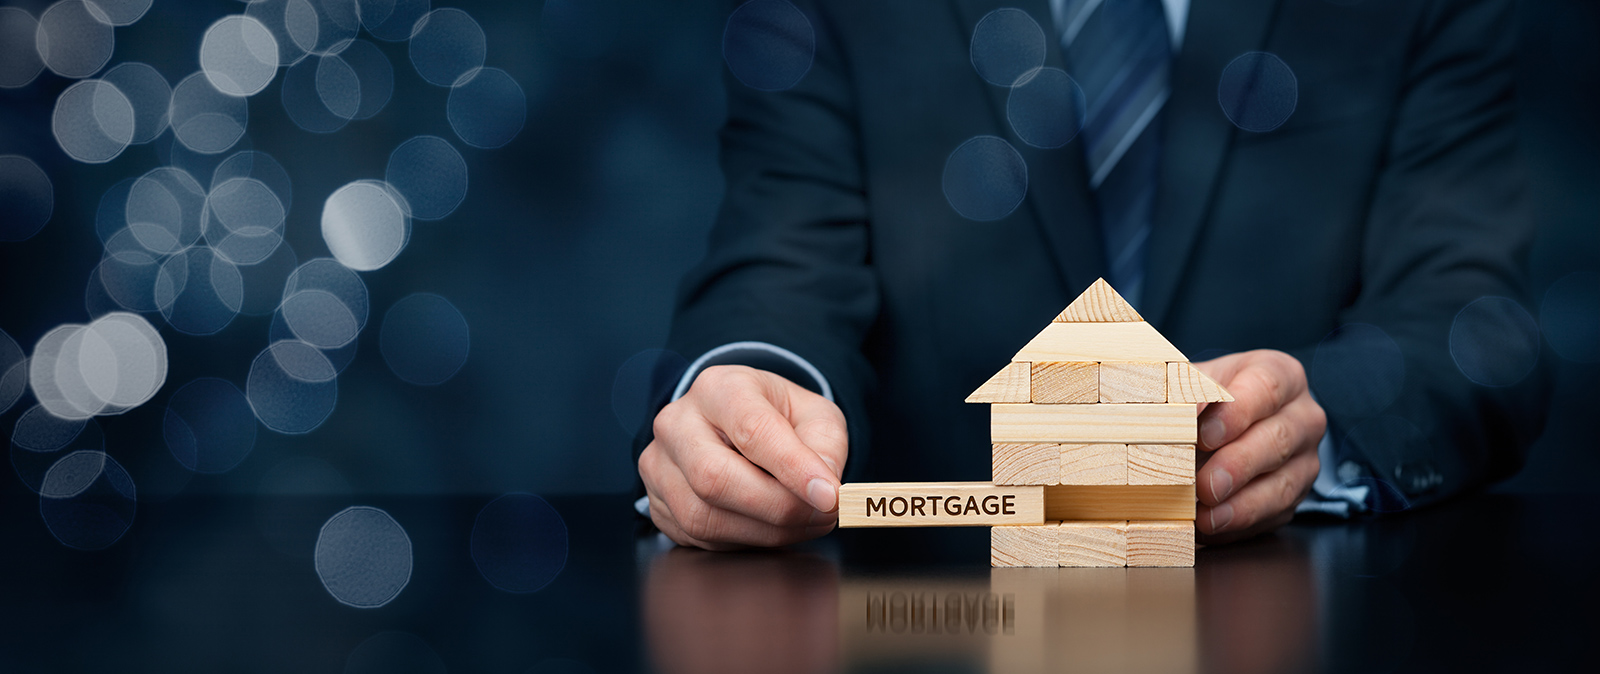 mortgage banner image